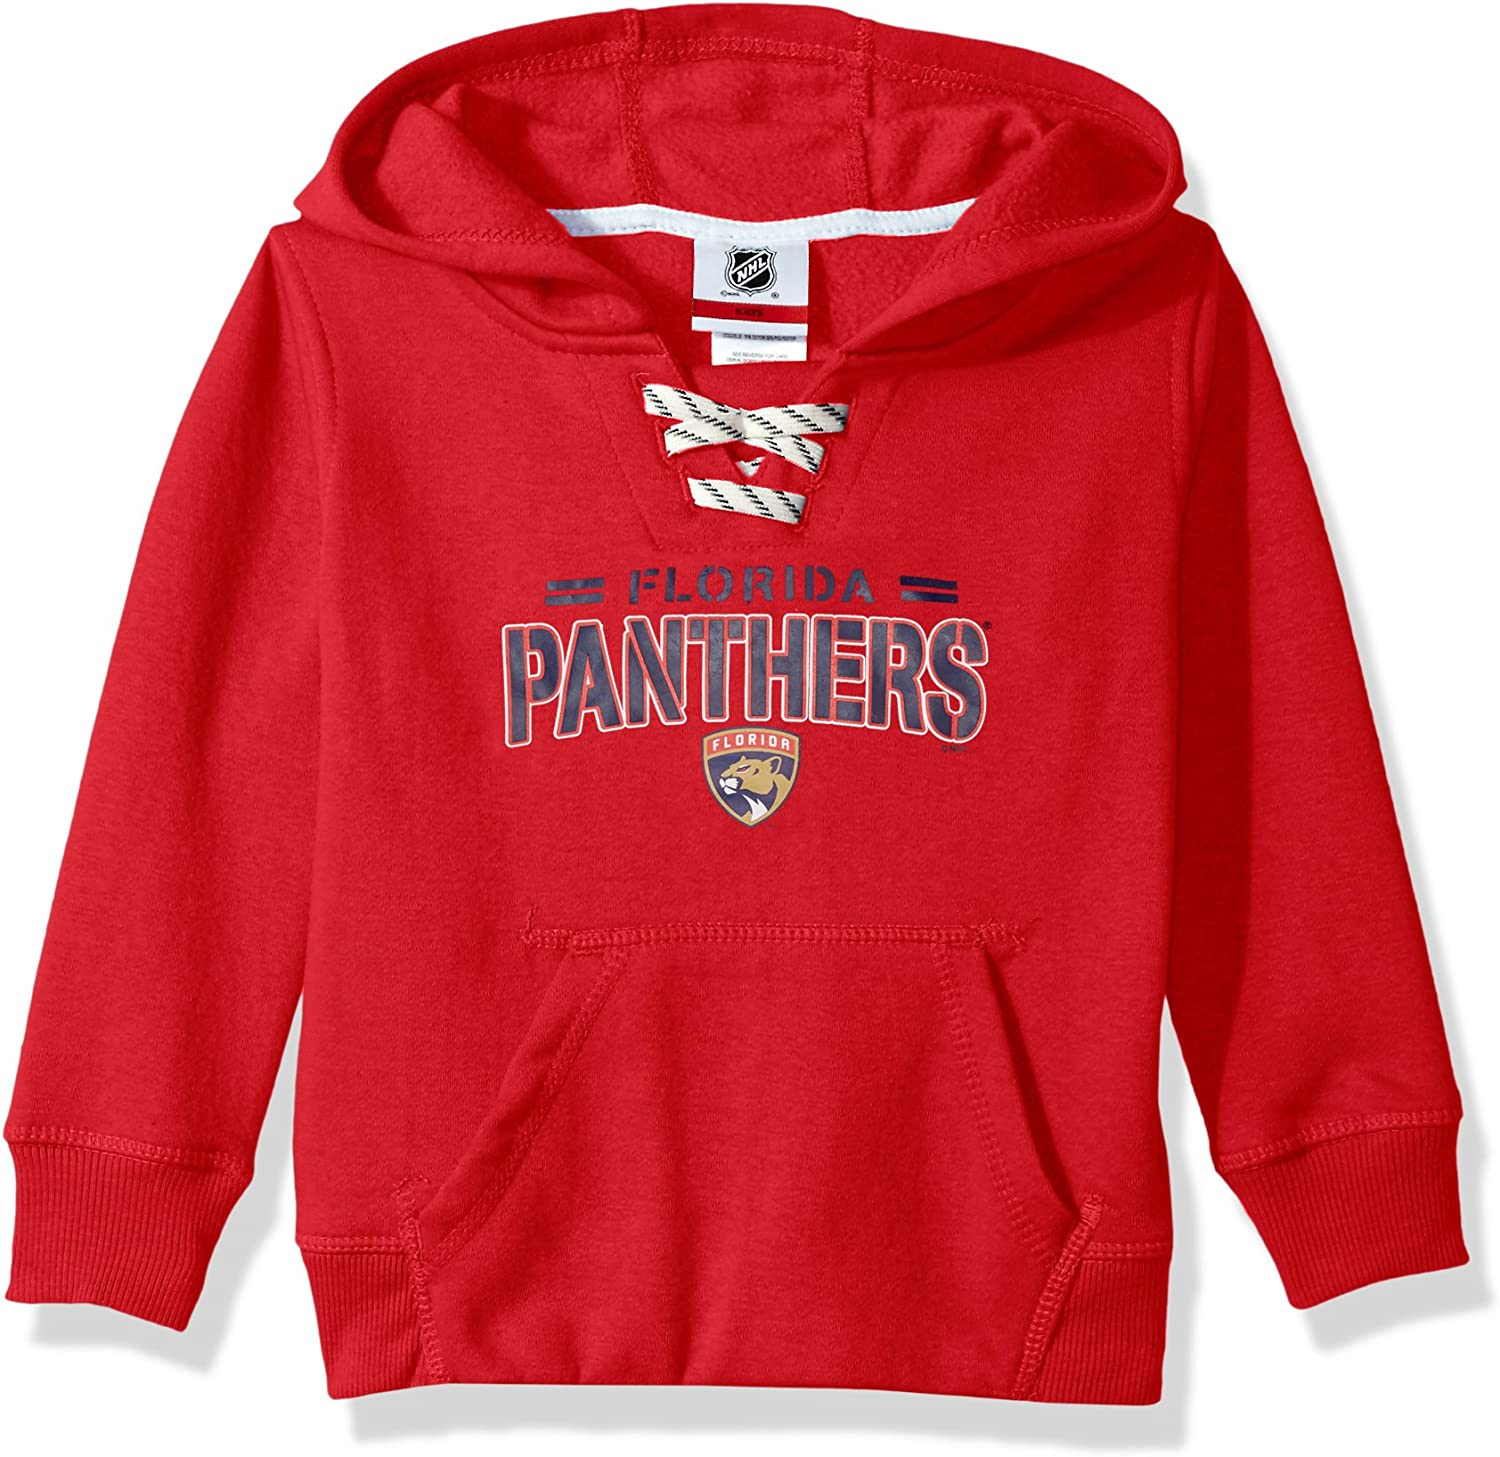 NFL Chicago Bears Boys  Outerstuff Delta Full Zip Jacket 10-12 Team Color Youth Medium